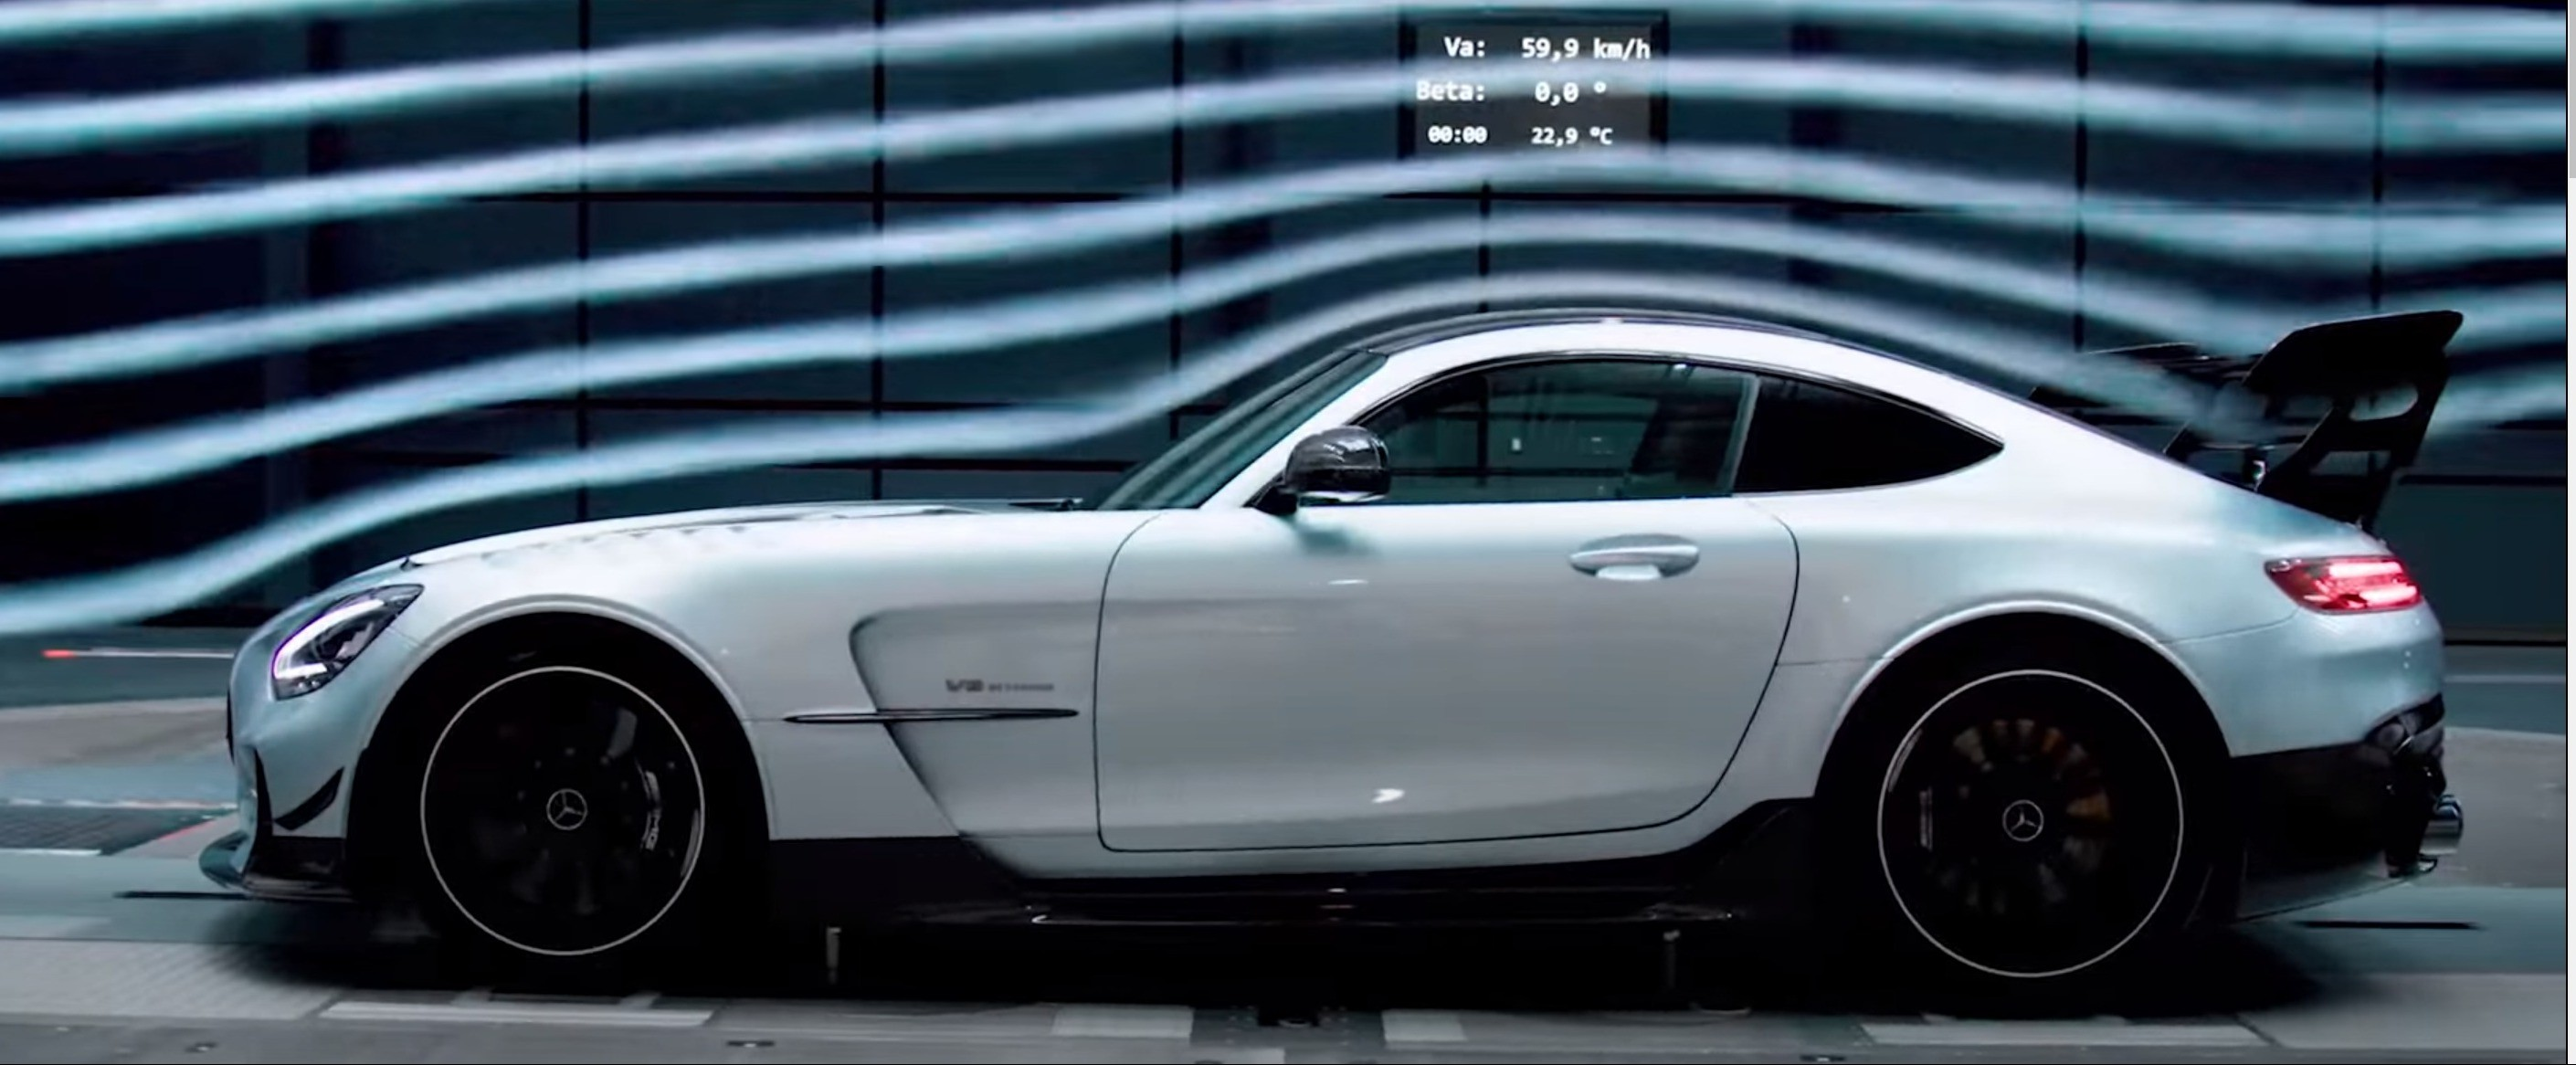 2014 - [Mercedes-AMG] GT [C190] - Page 32 2021-mercedes-amg-gt-black-series-gets-teased-by-shmee150-of-all-people_1